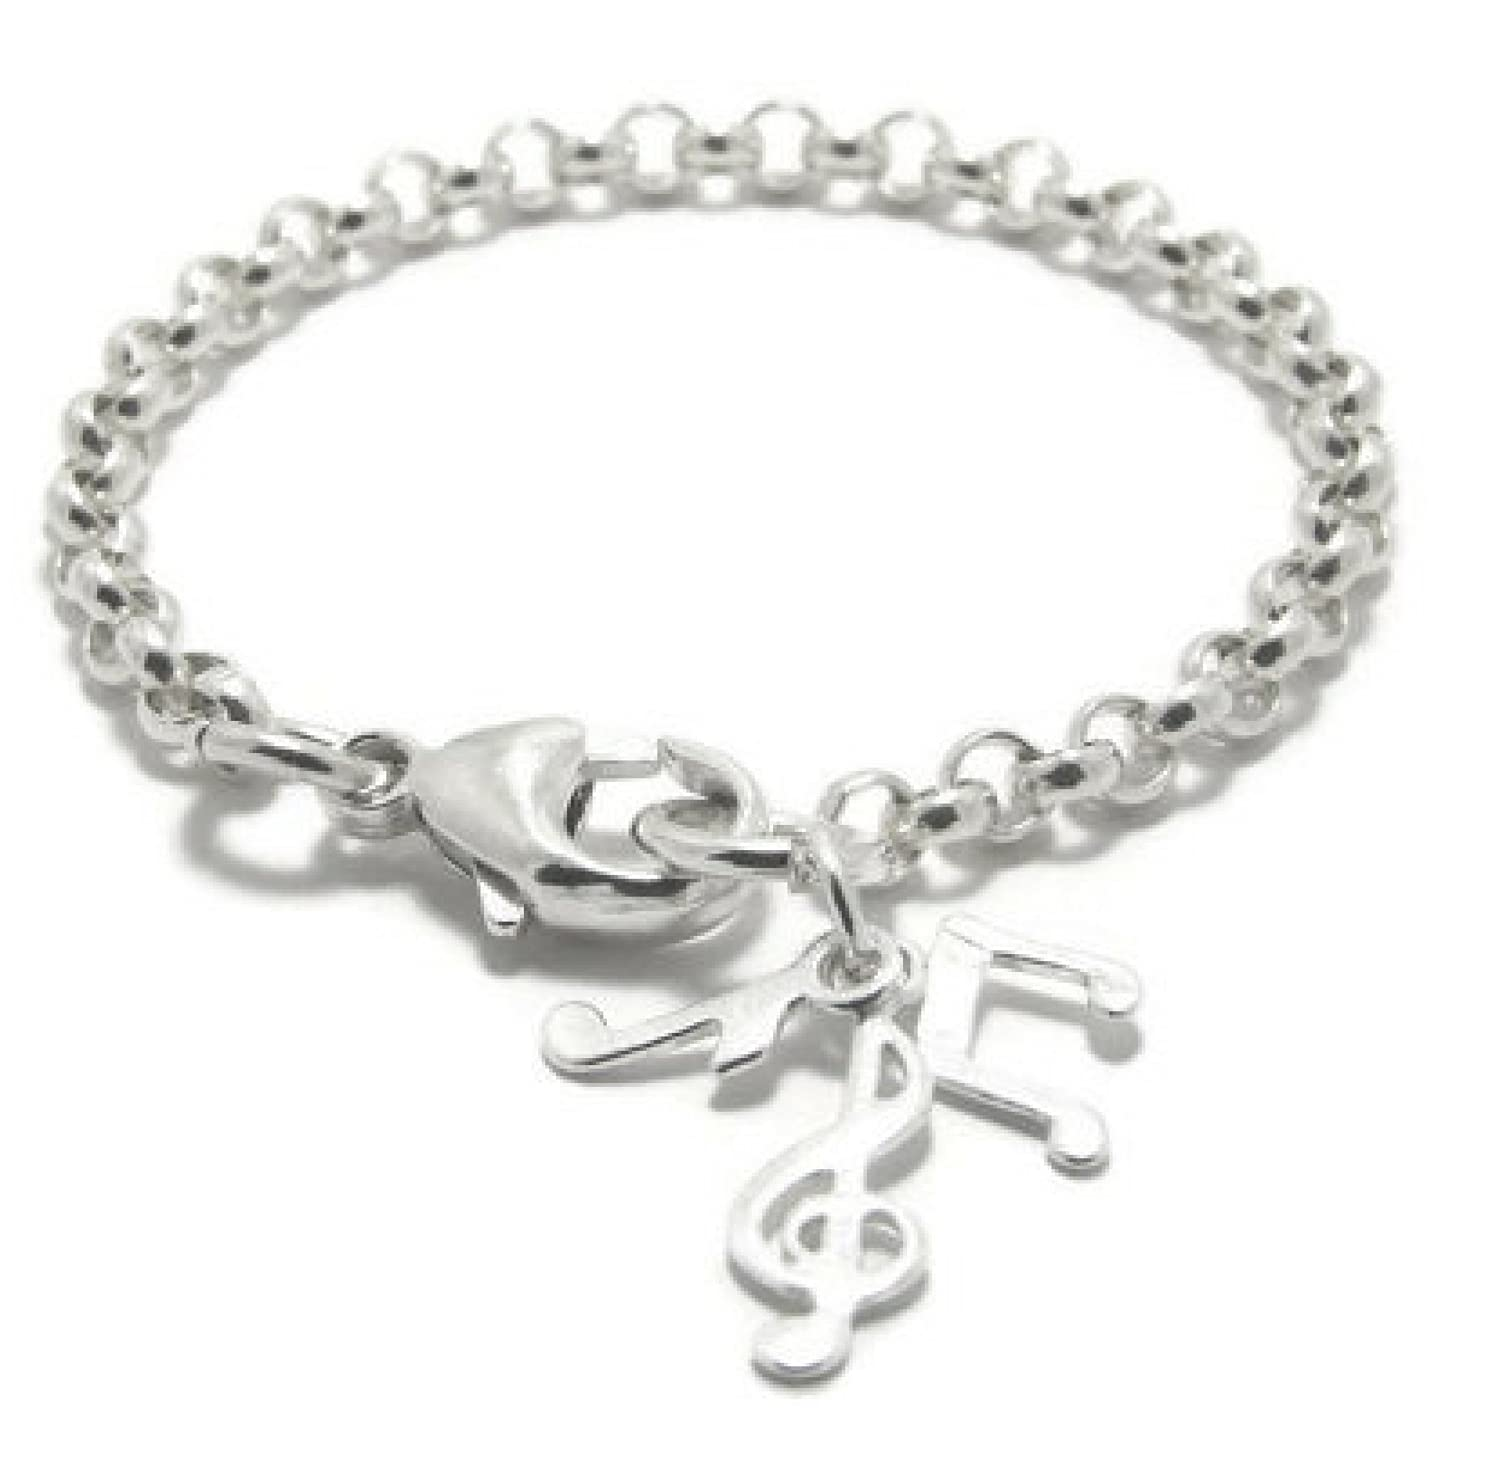 Silver music note bracelet sterling silver music bracelet silver music note charms sterling silver rolo chain music jewelry 925